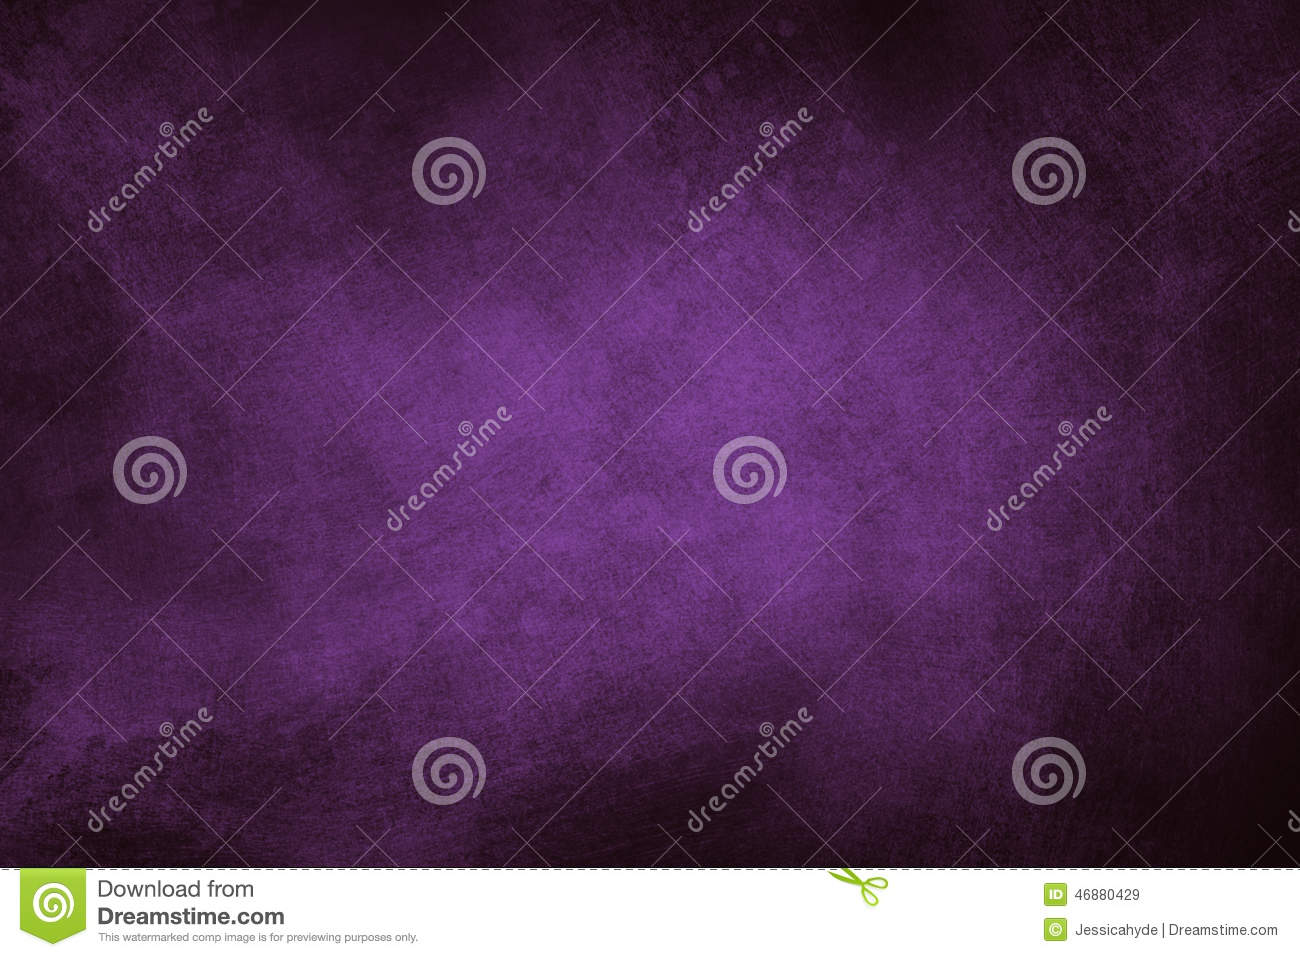 Abstract background purple